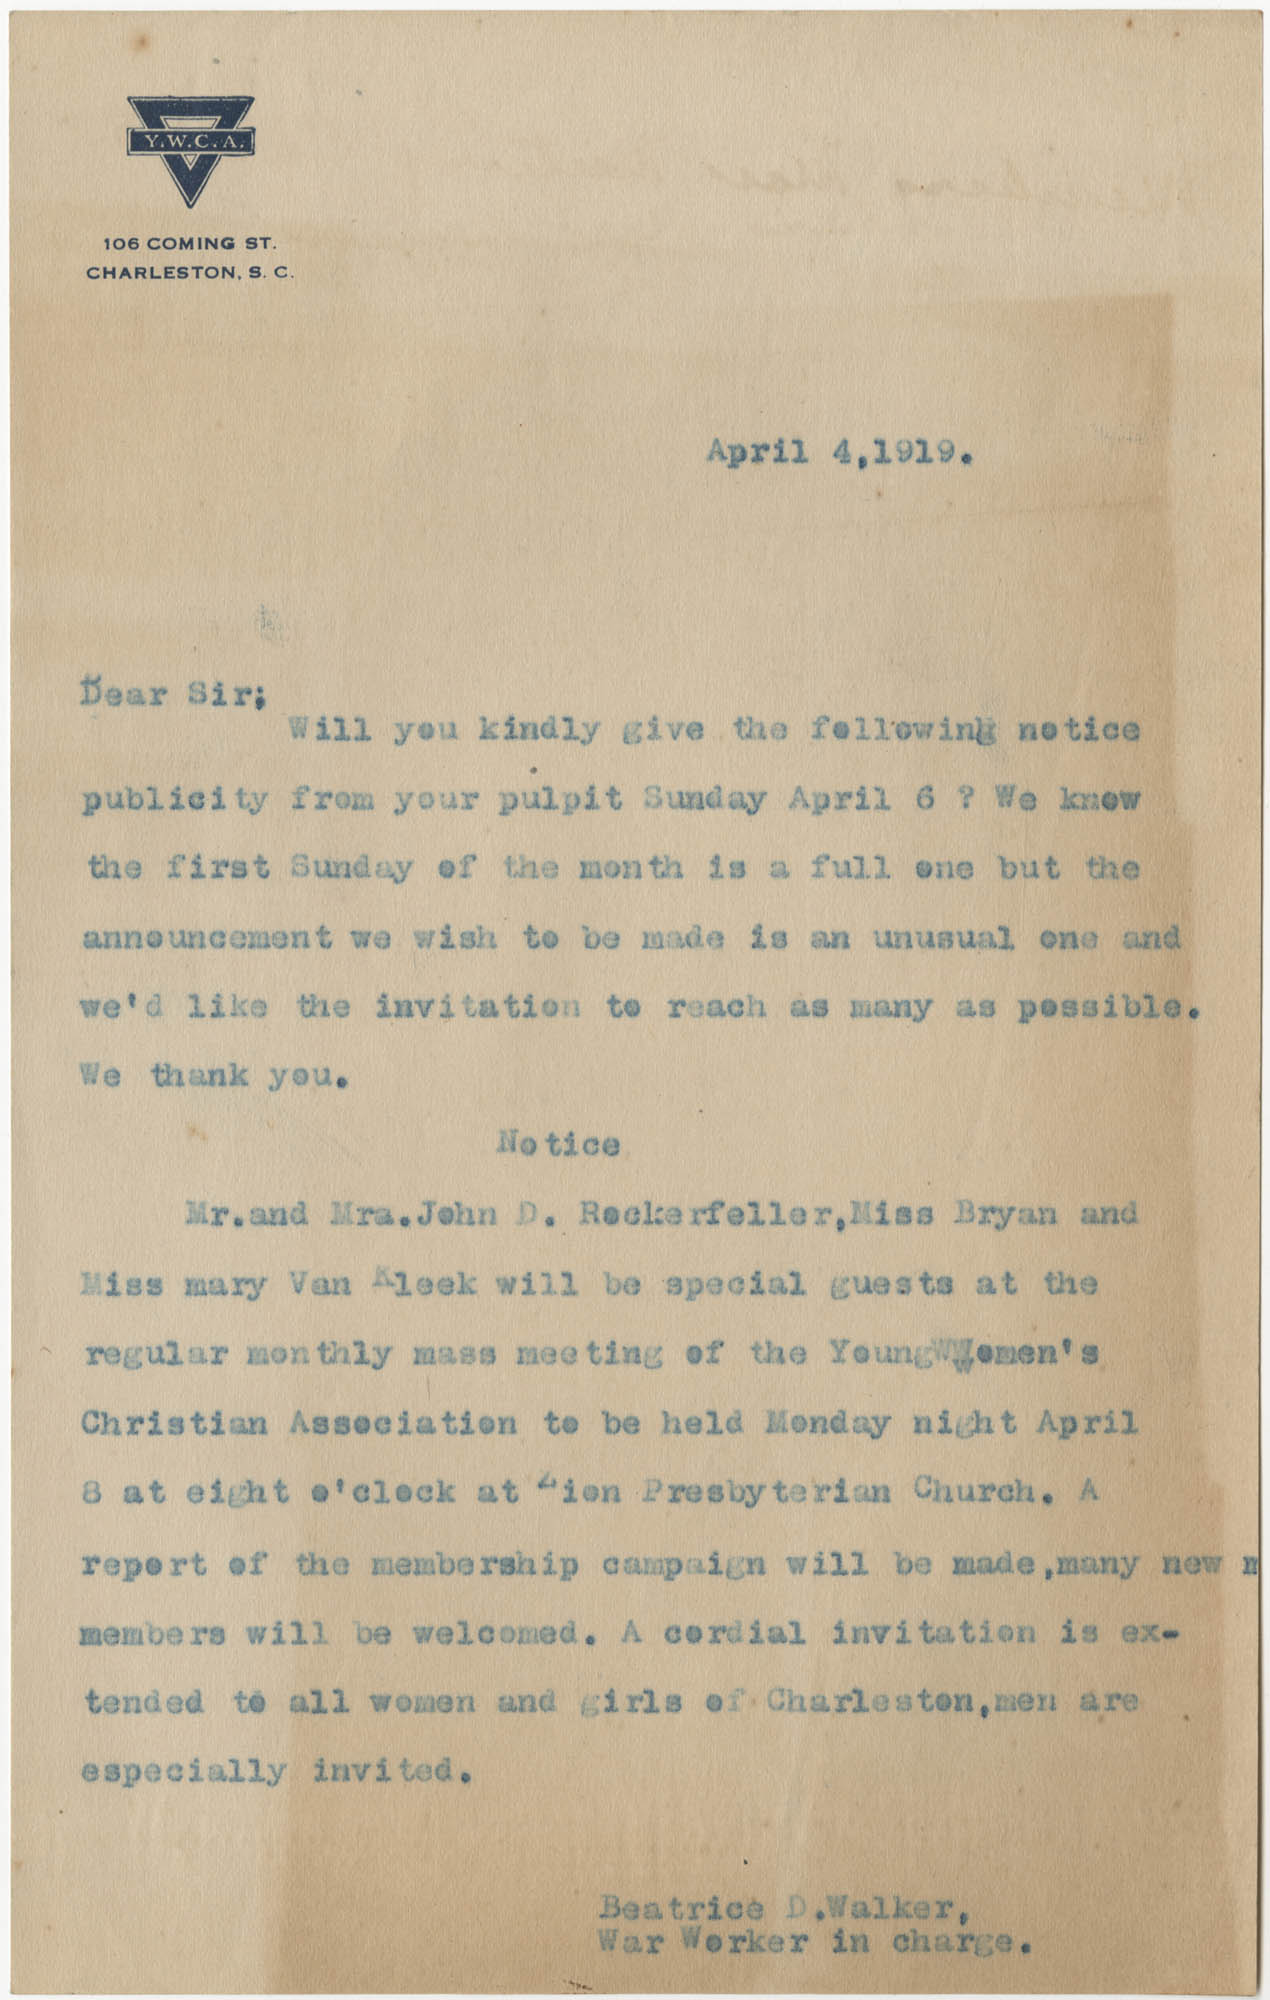 Letter from Beatrice D. Walker, April 4, 1919